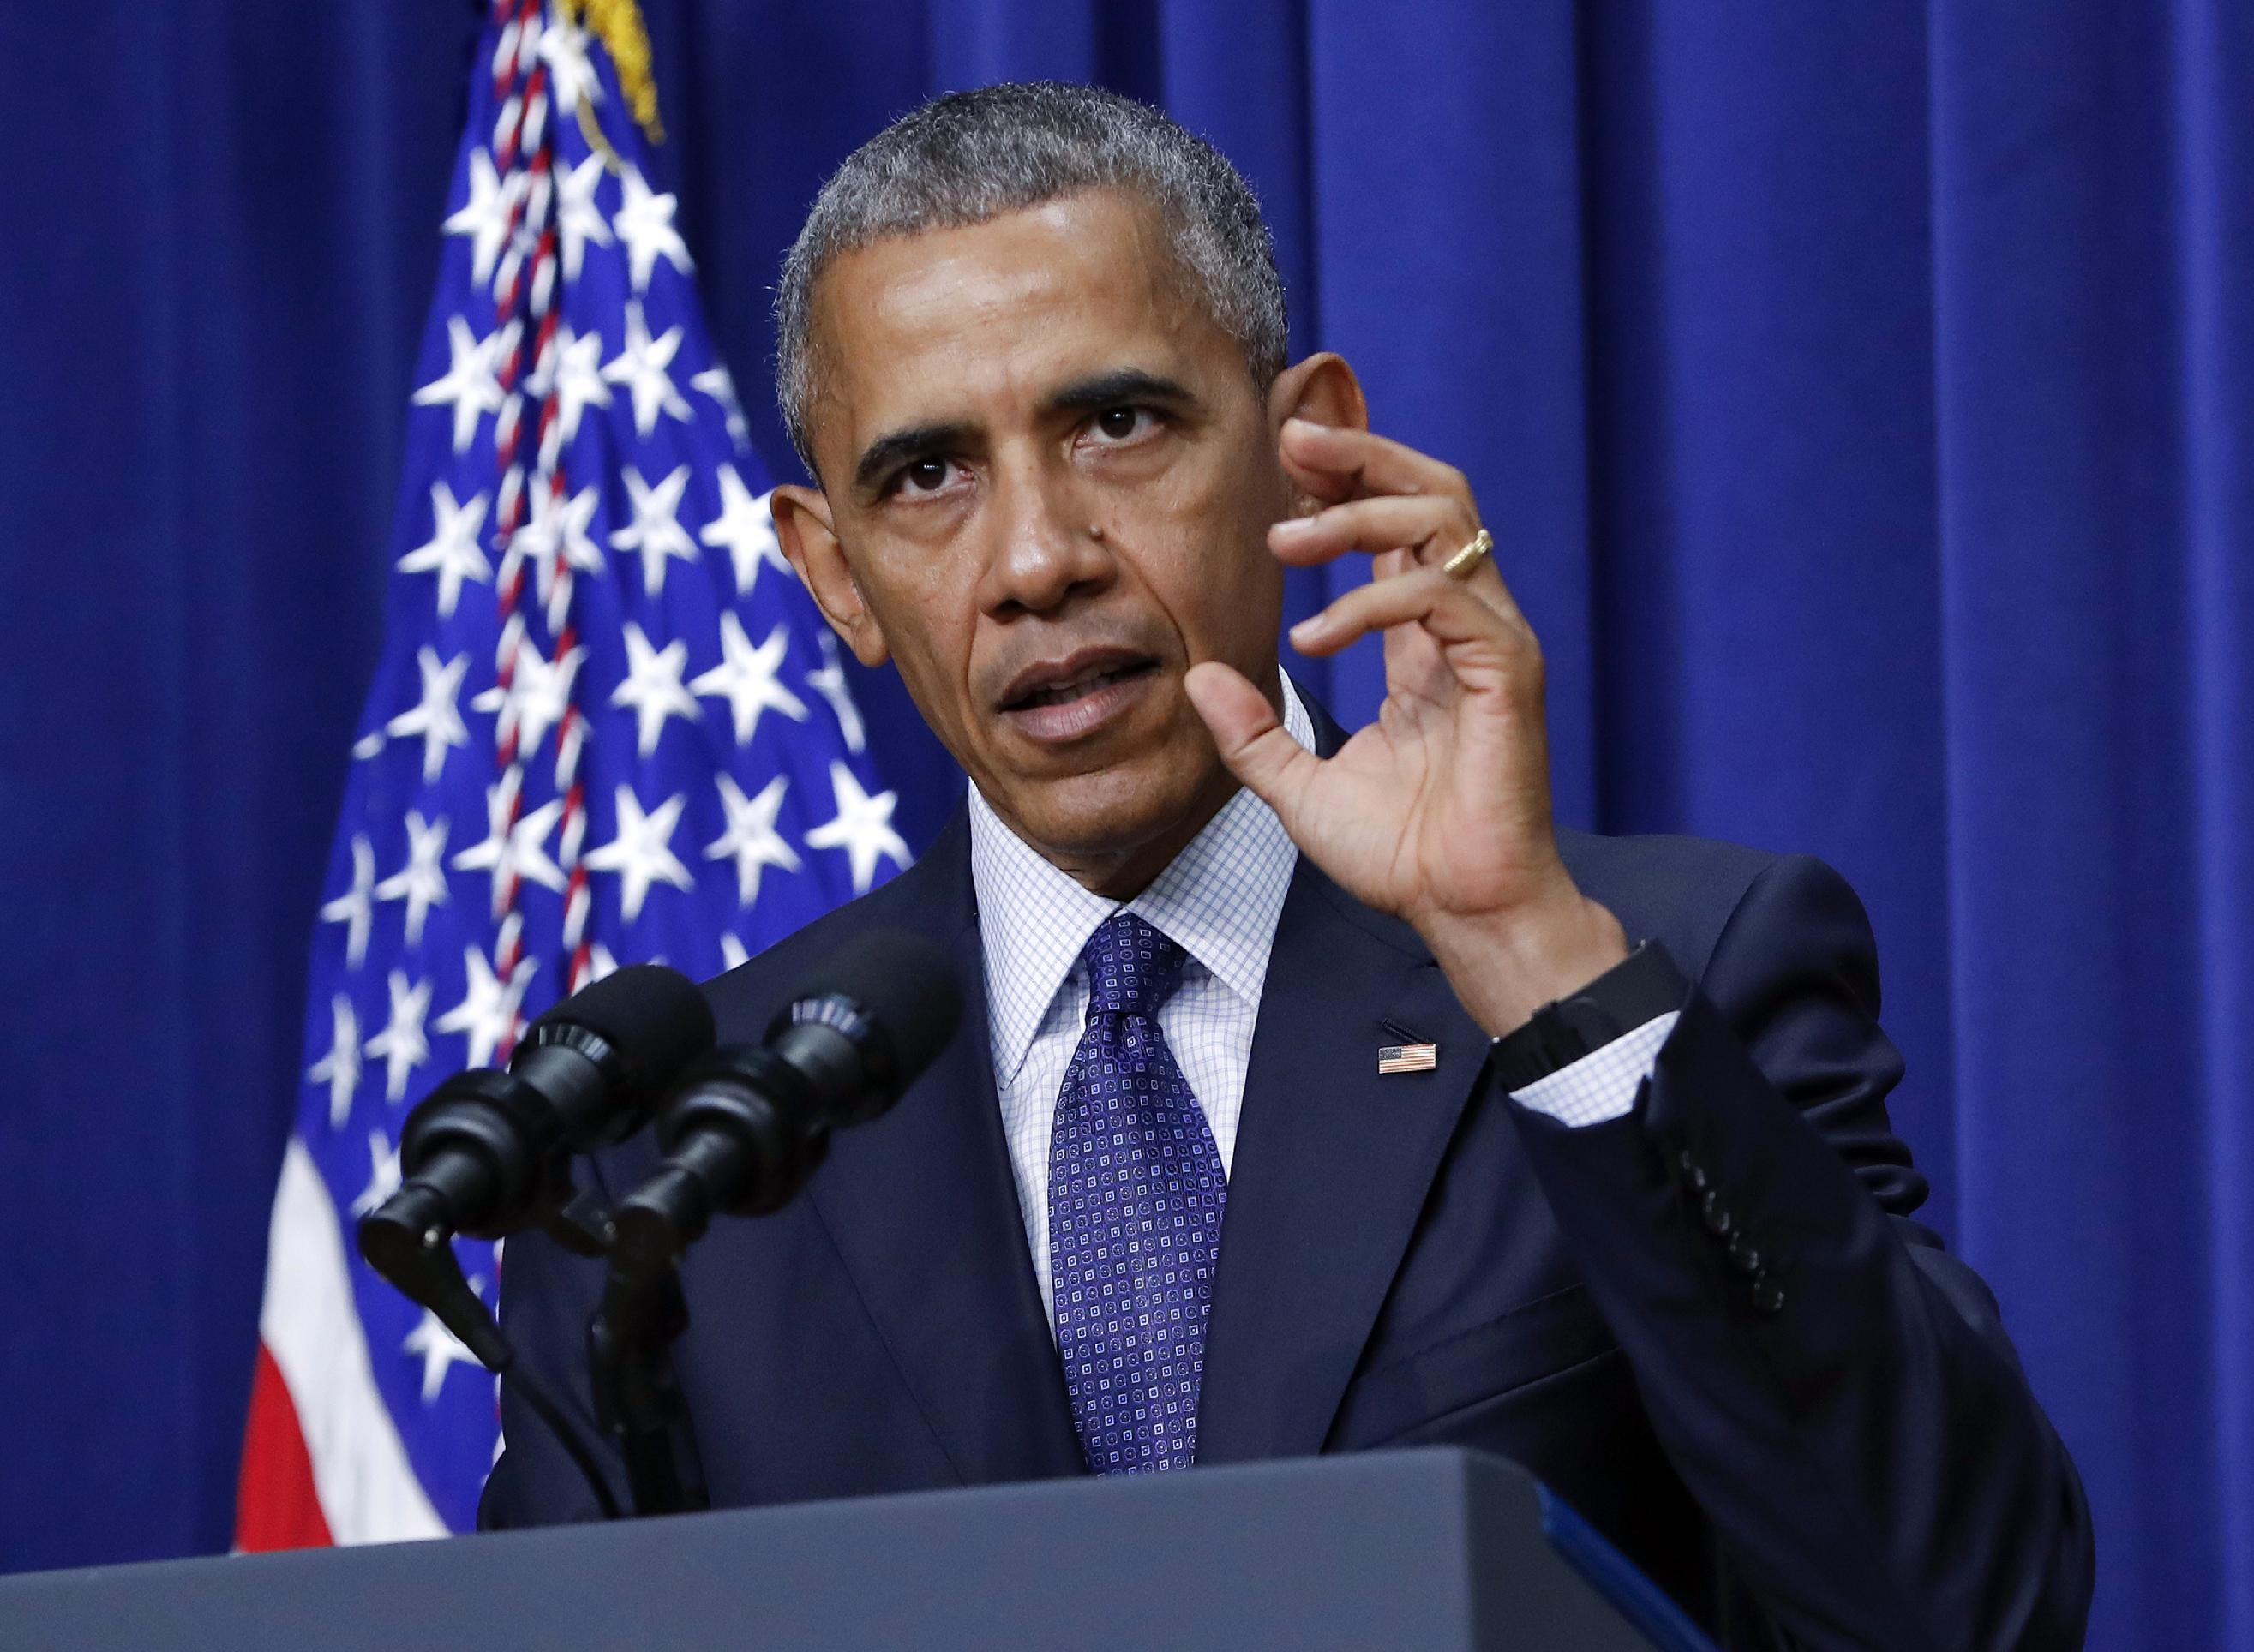 At Dem convention, Obama seeks to counter GOP doom-and-gloom